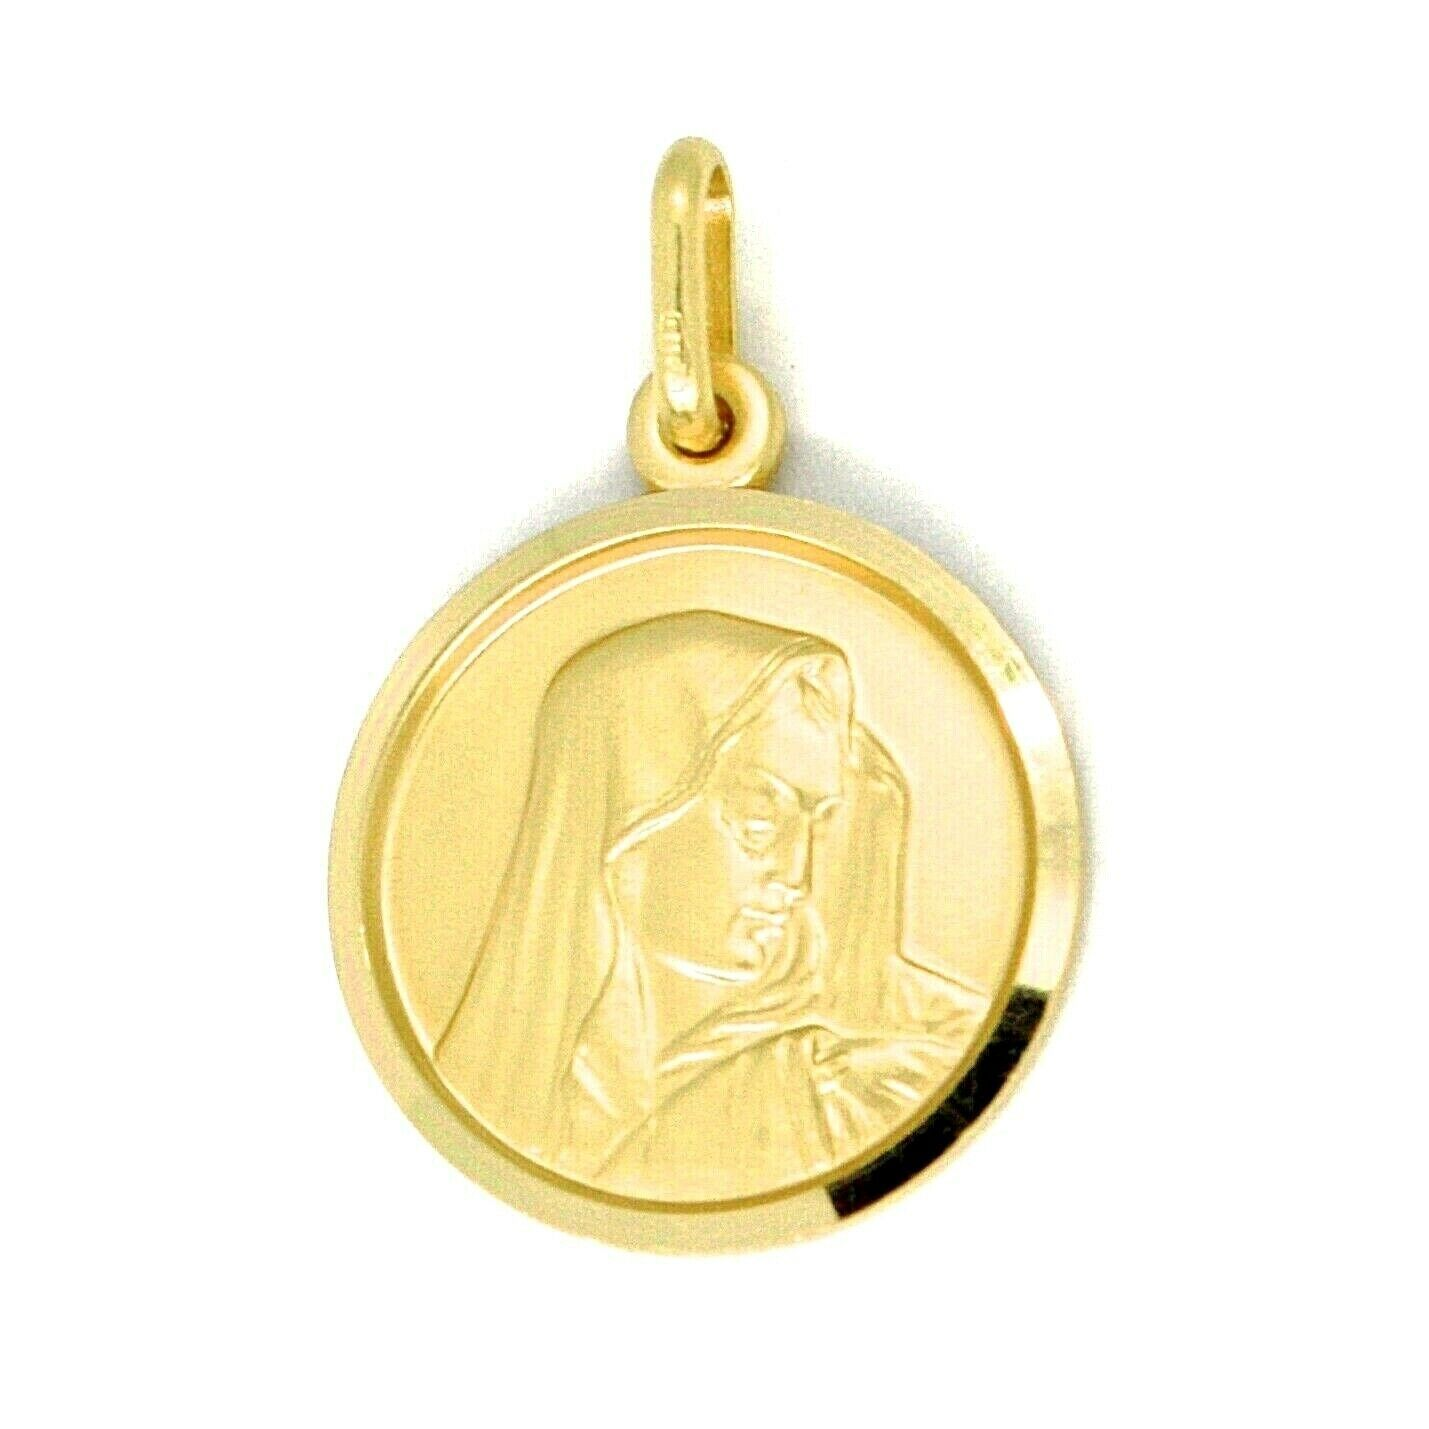 SOLID 18K YELLOW GOLD OUR LADY OF SORROWS, 15 MM, ROUND MEDAL, MATER DOLOROSA